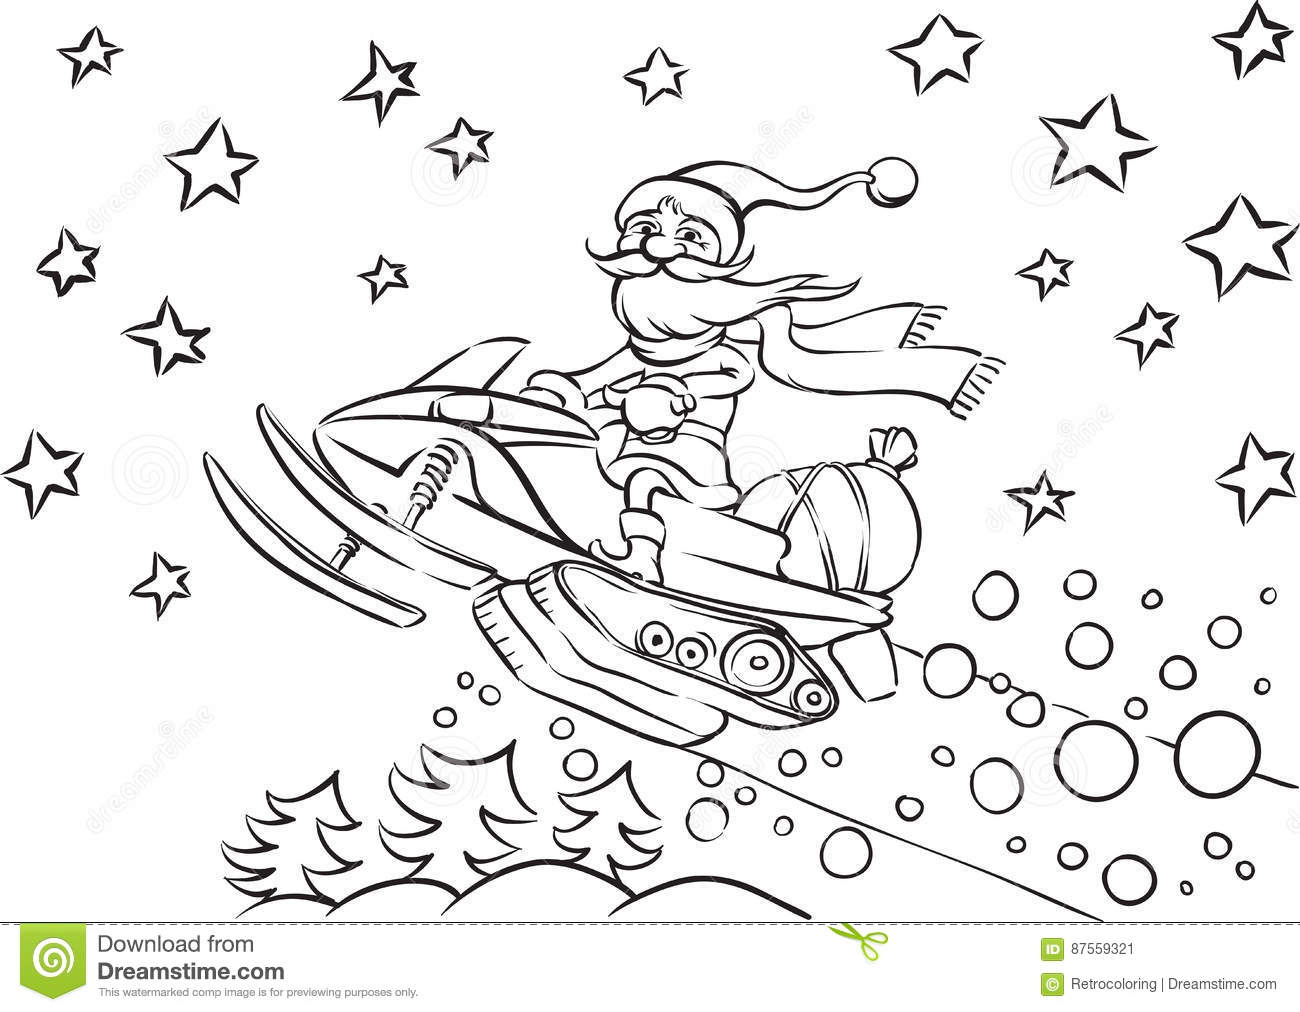 snowmobile coloring pages Coloring Book Santa Claus Riding On Snowmobile Stock Vector  snowmobile coloring pages